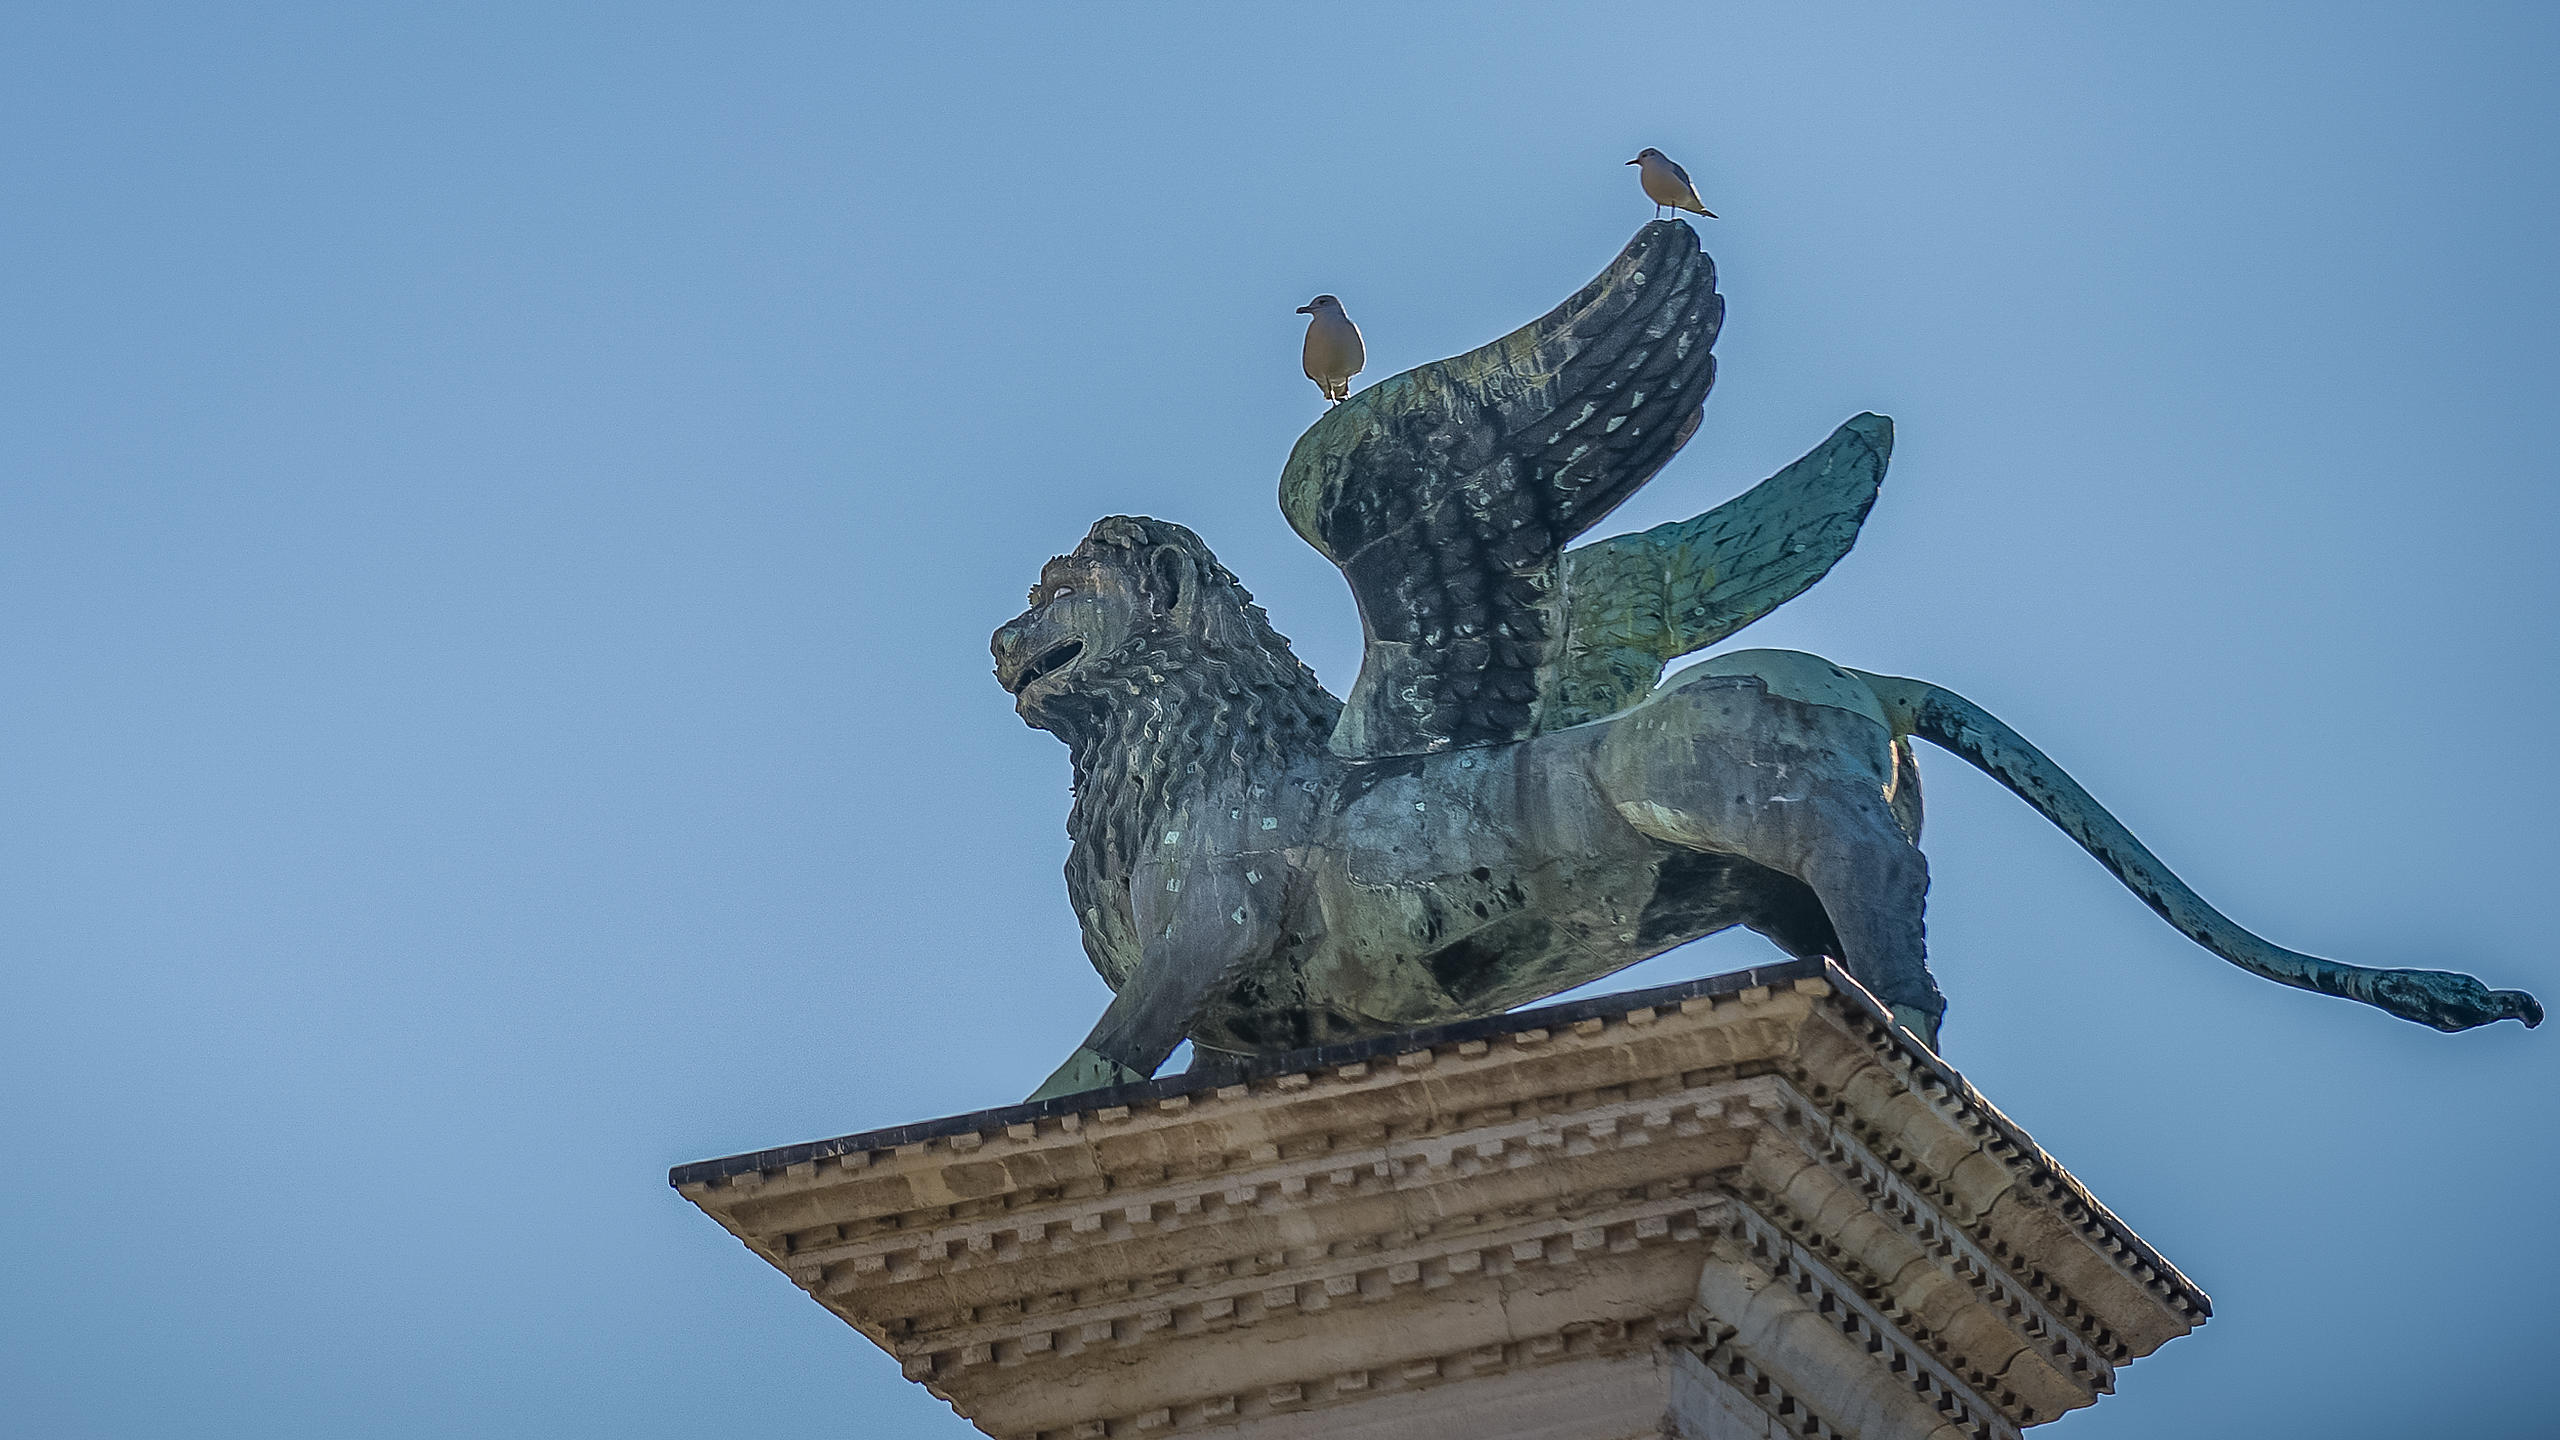 Lion of San Marco Pedestal with seagulls